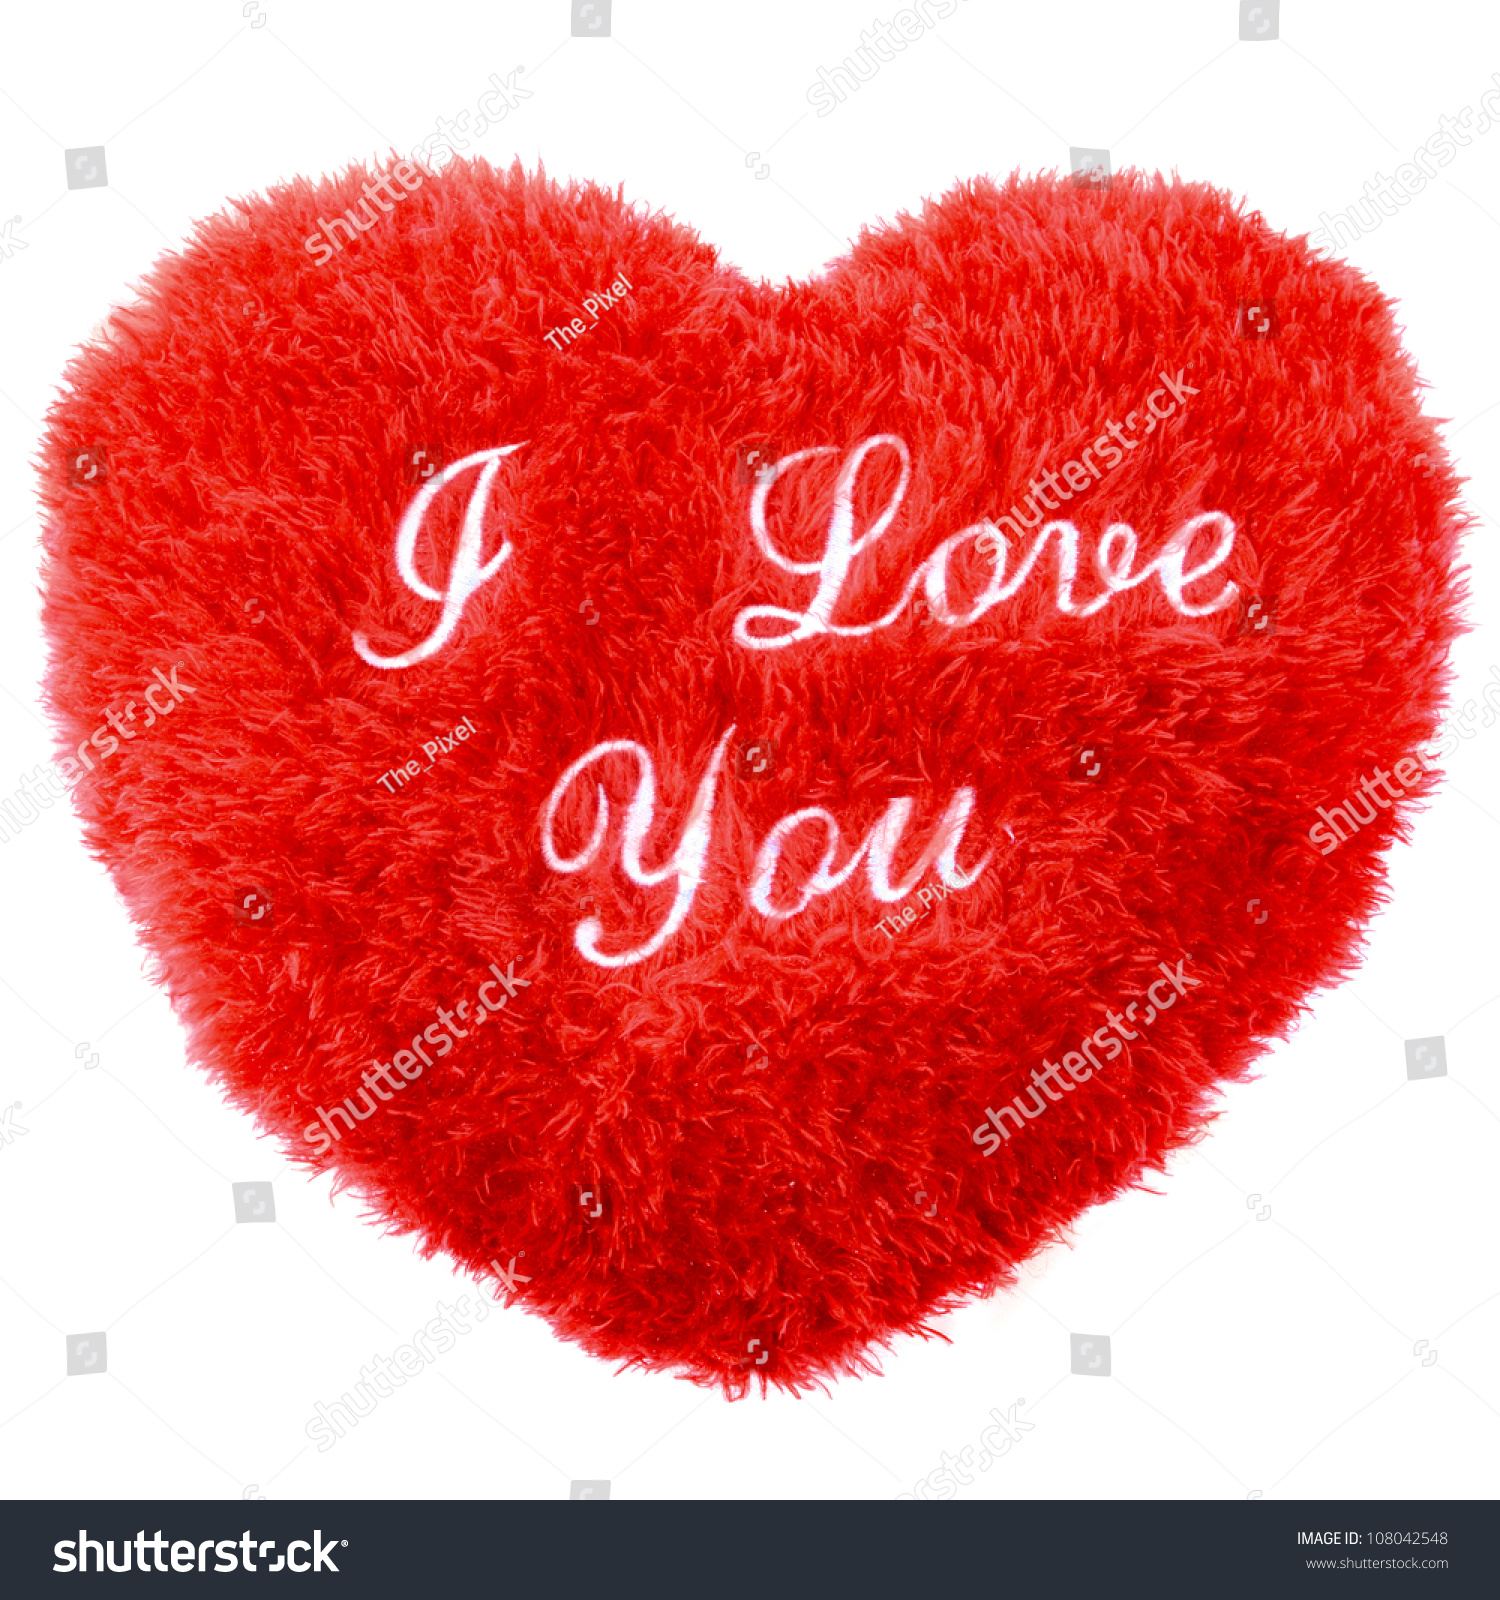 Fluffy Love You Heart Shape Day Stock Photo 108042548